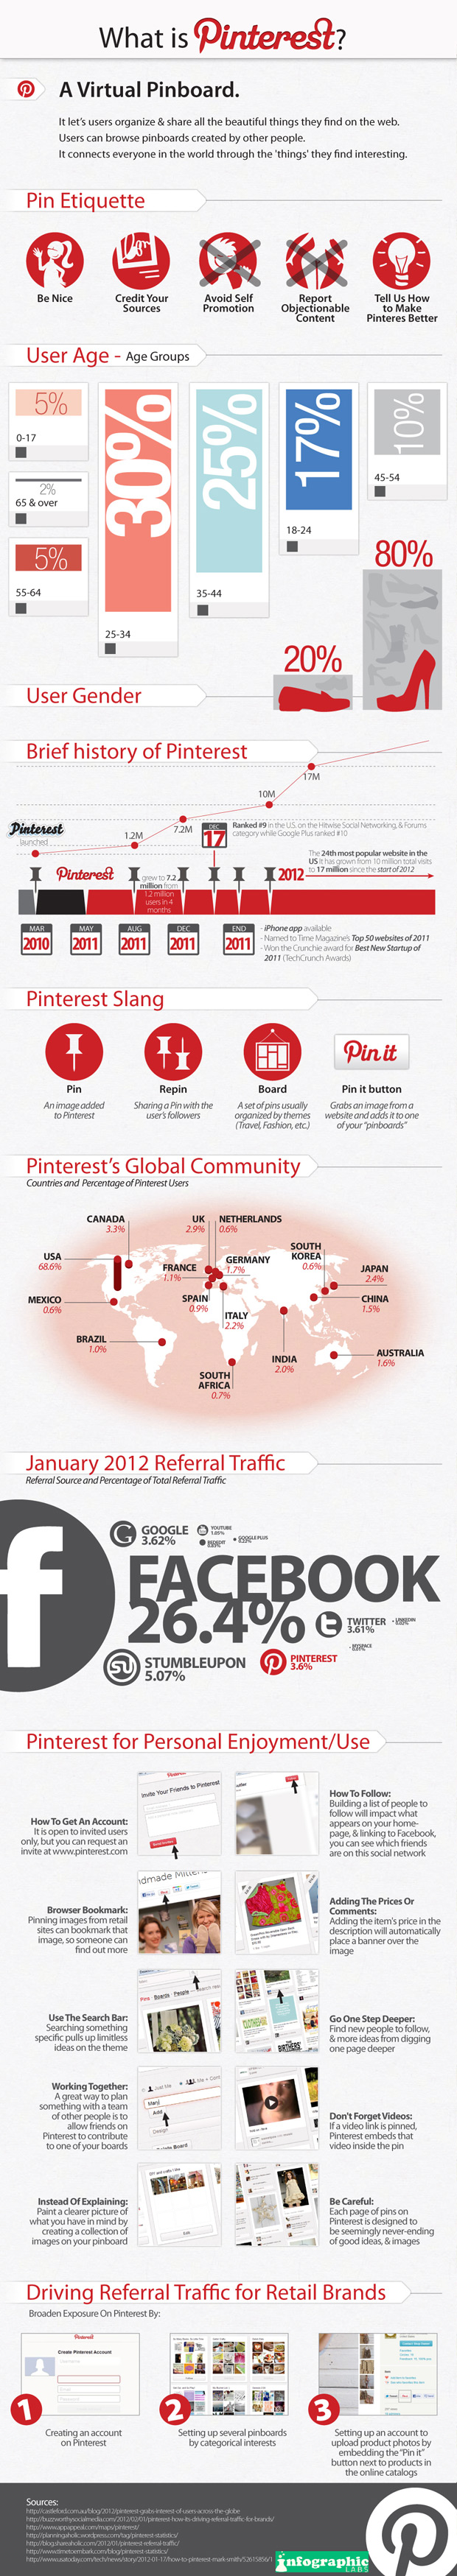 Pinterest-what-is-it